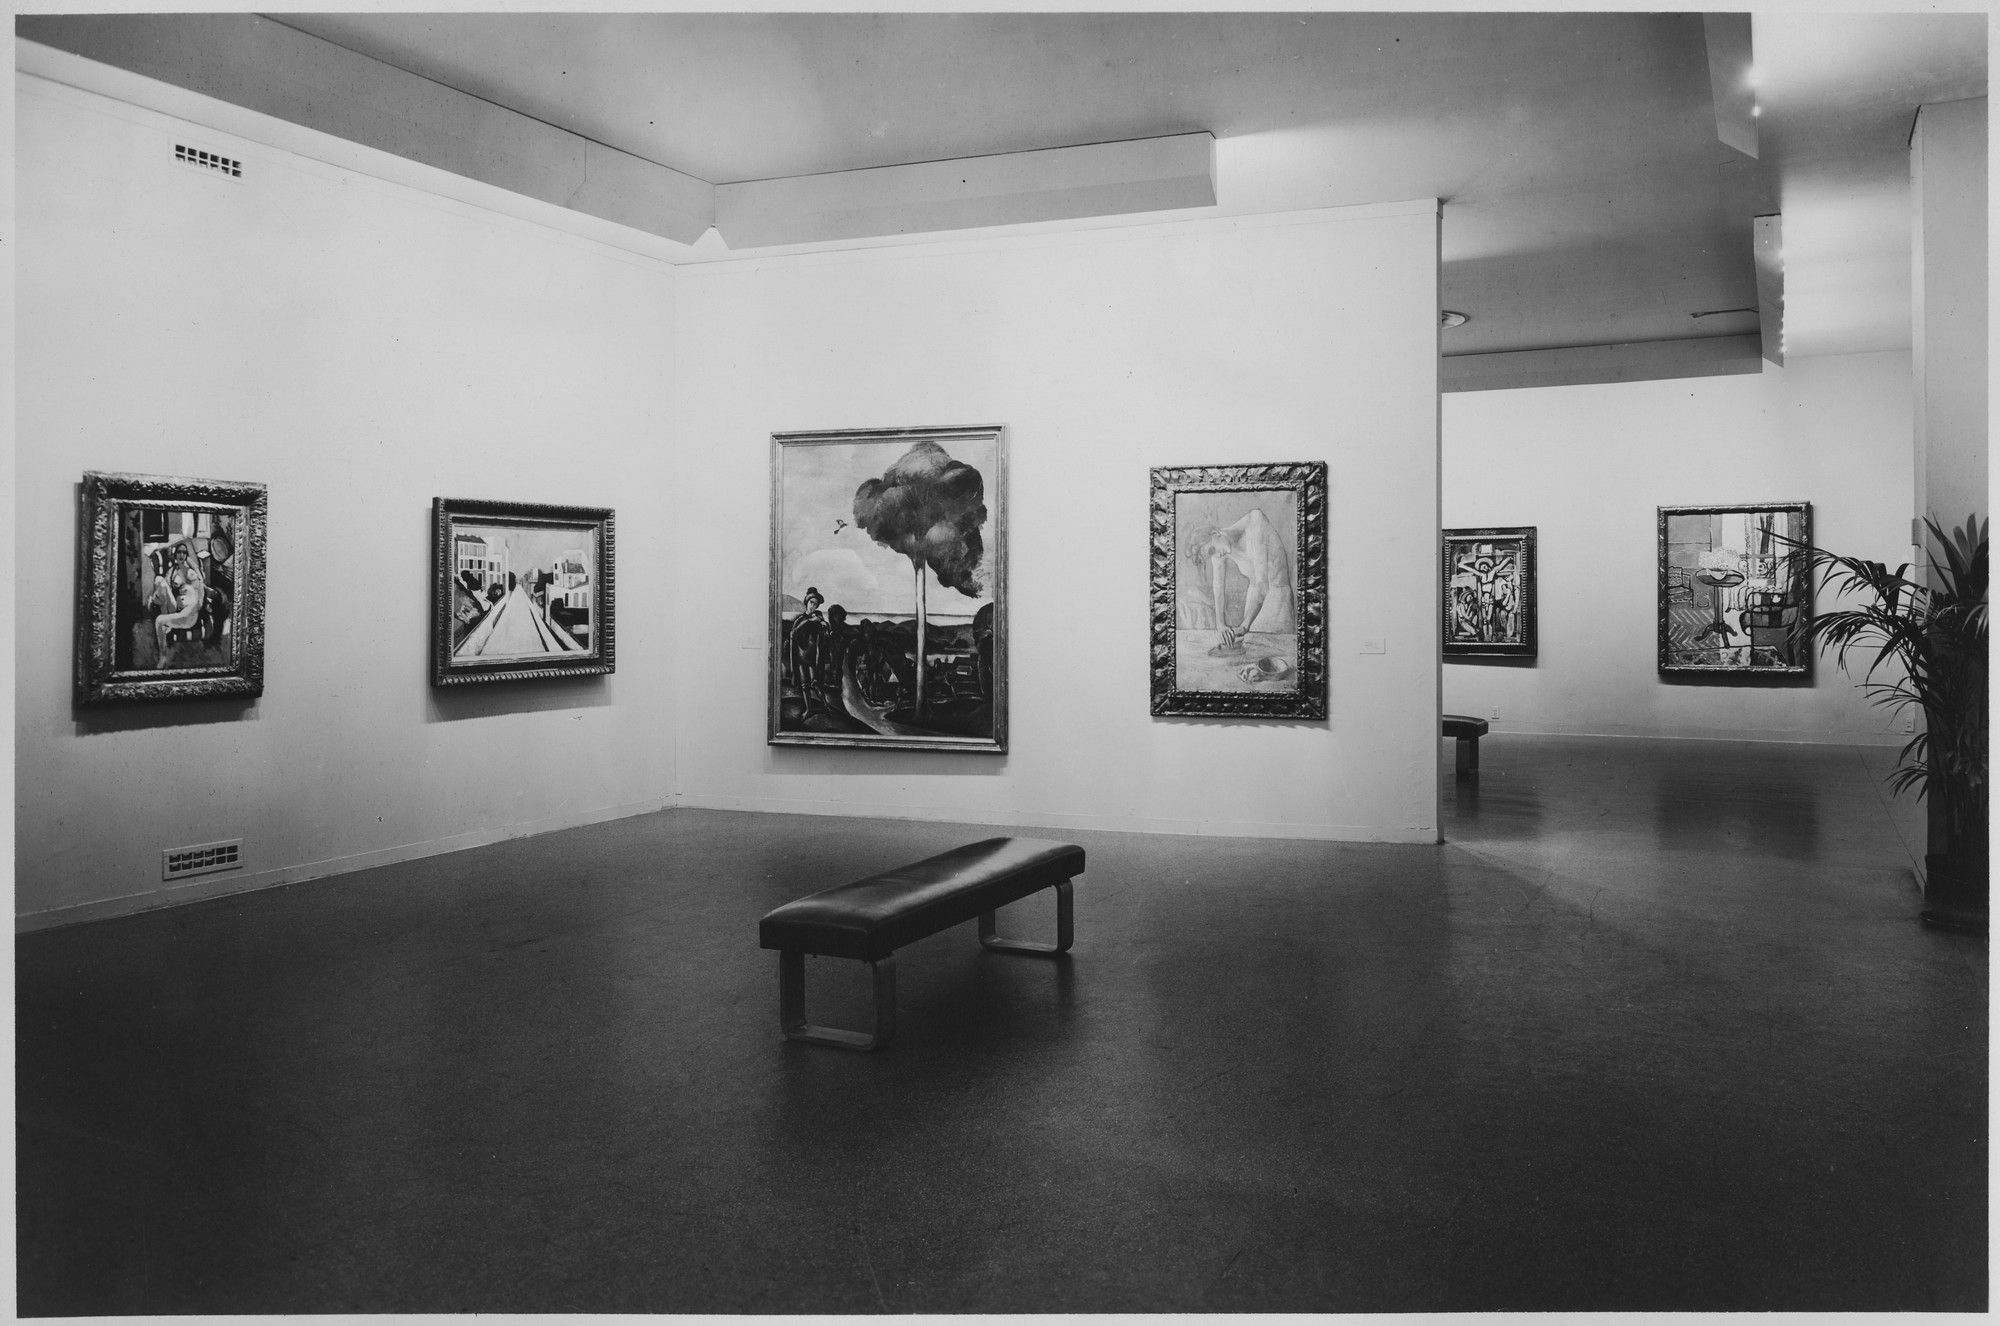 "Installation view of the exhibition, ""Painting, Sculpture, Prints,"" in the series, ""Art in Progress:  15th Anniversary Exhibition."" May 24, 1944–October 15, 1944. Photographic Archive. The Museum of Modern Art Archives, New York. IN258a.1. Photograph by Soichi Sunami."